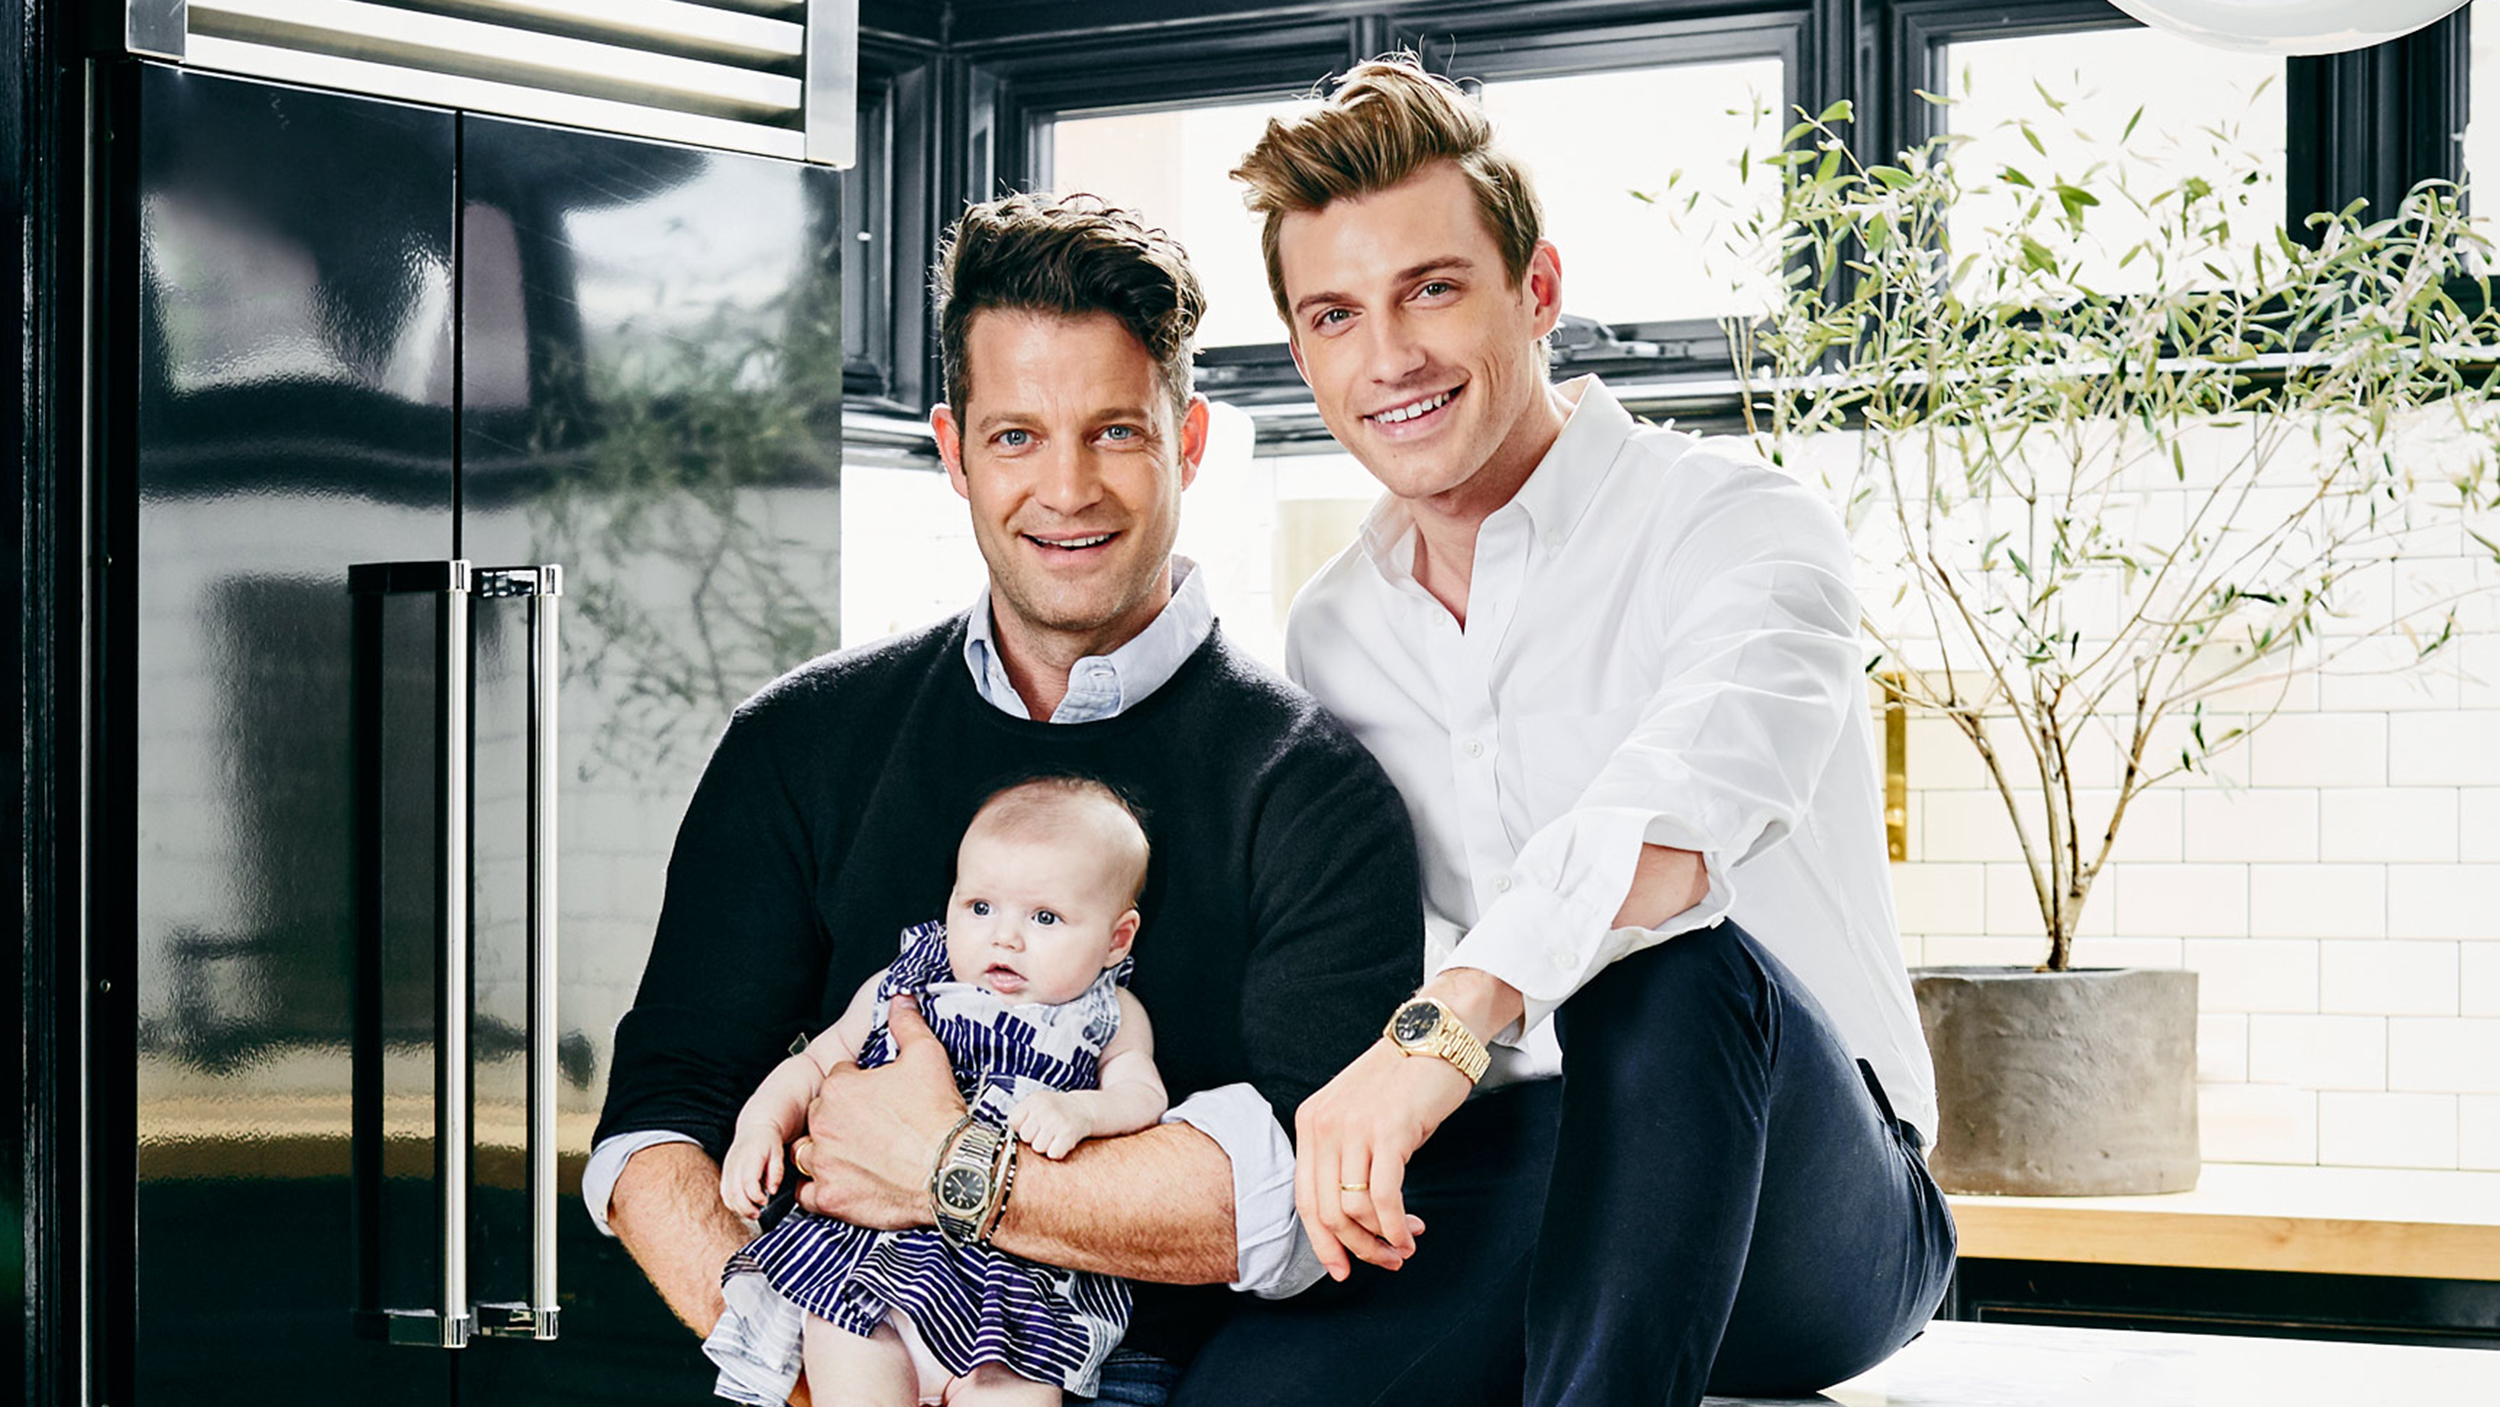 Renovated Bathroom Ideas Look Inside Nate Berkus And Jeremiah Brent S Stunning New